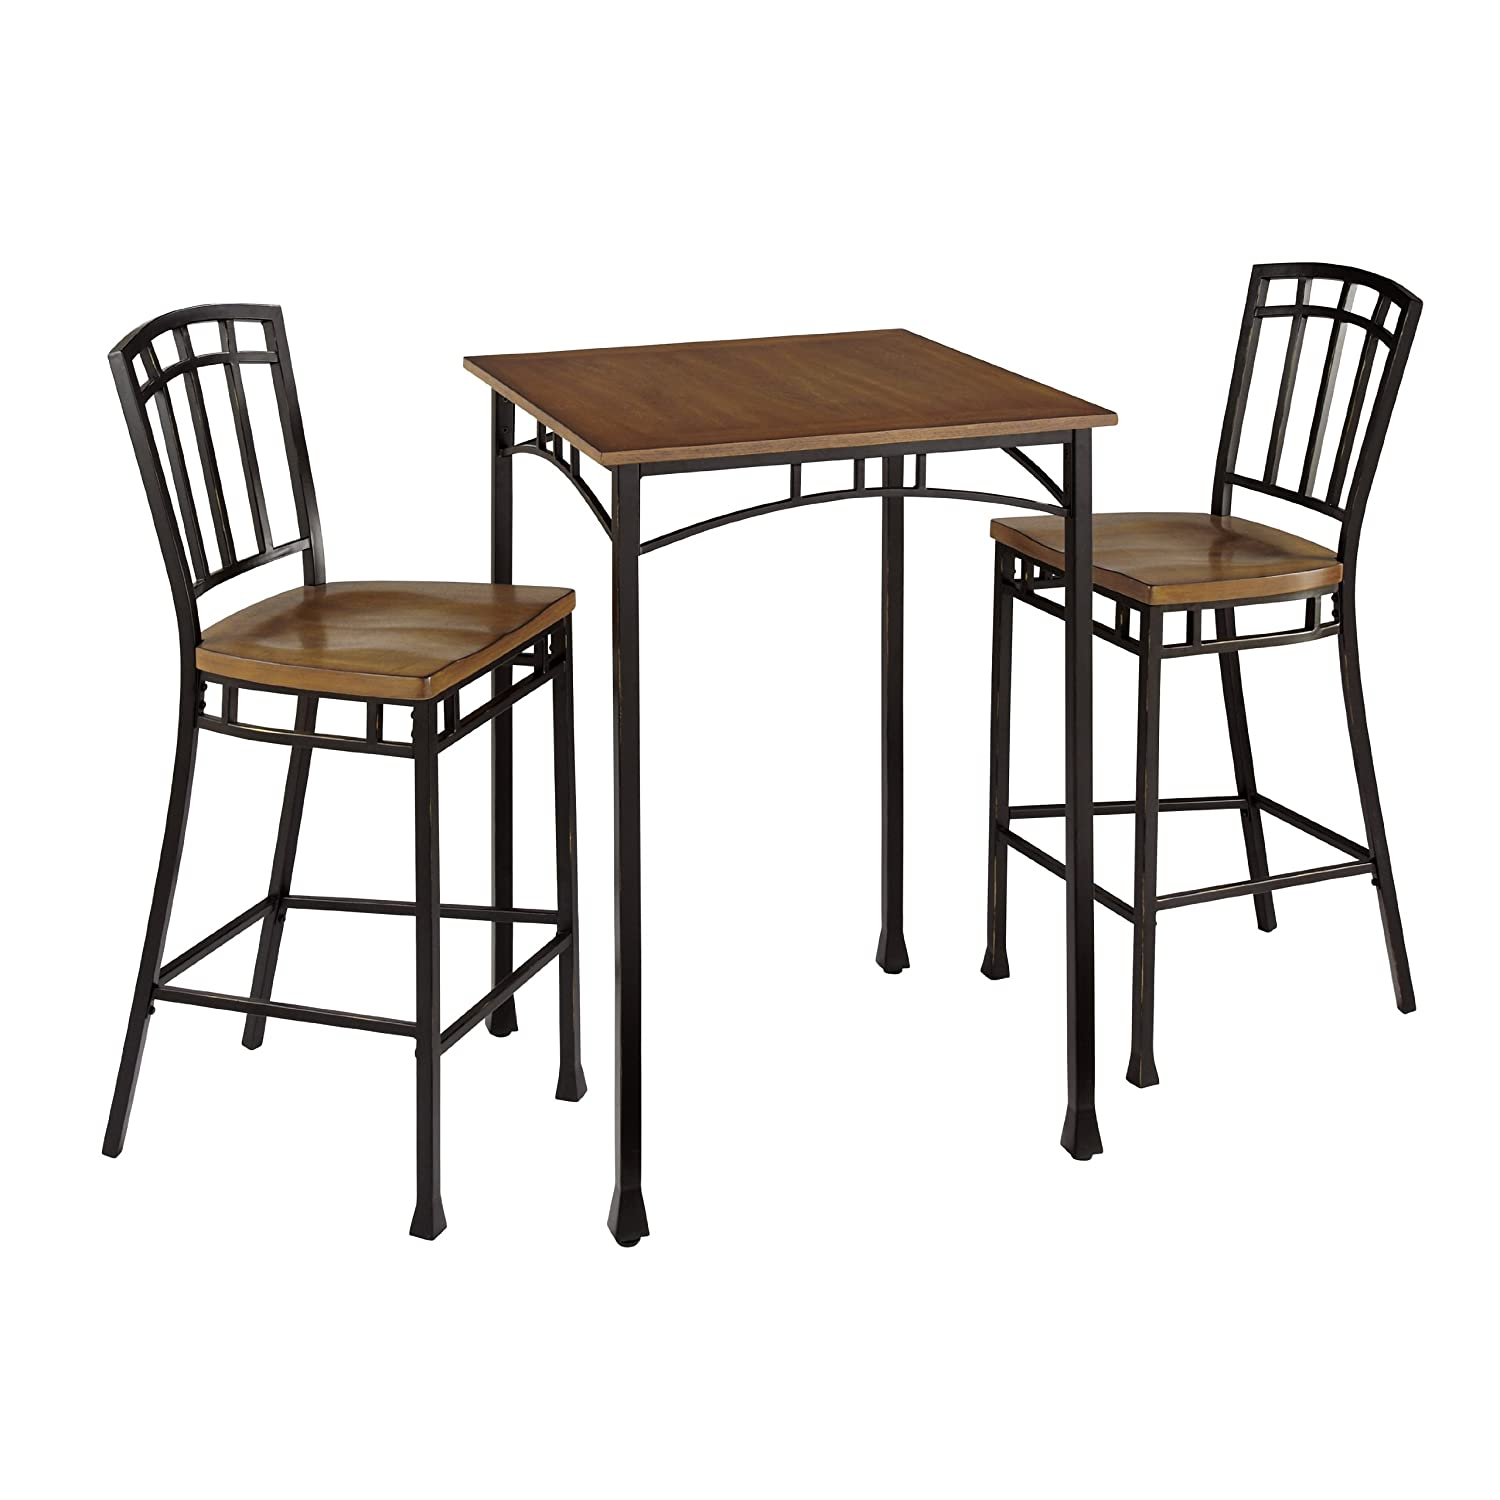 Amazon.com Home Styles 5050-359 Modern Craftsman 3-Piece Bistro Set Kitchen u0026 Dining  sc 1 st  Amazon.com : craftsman stool and table set - islam-shia.org